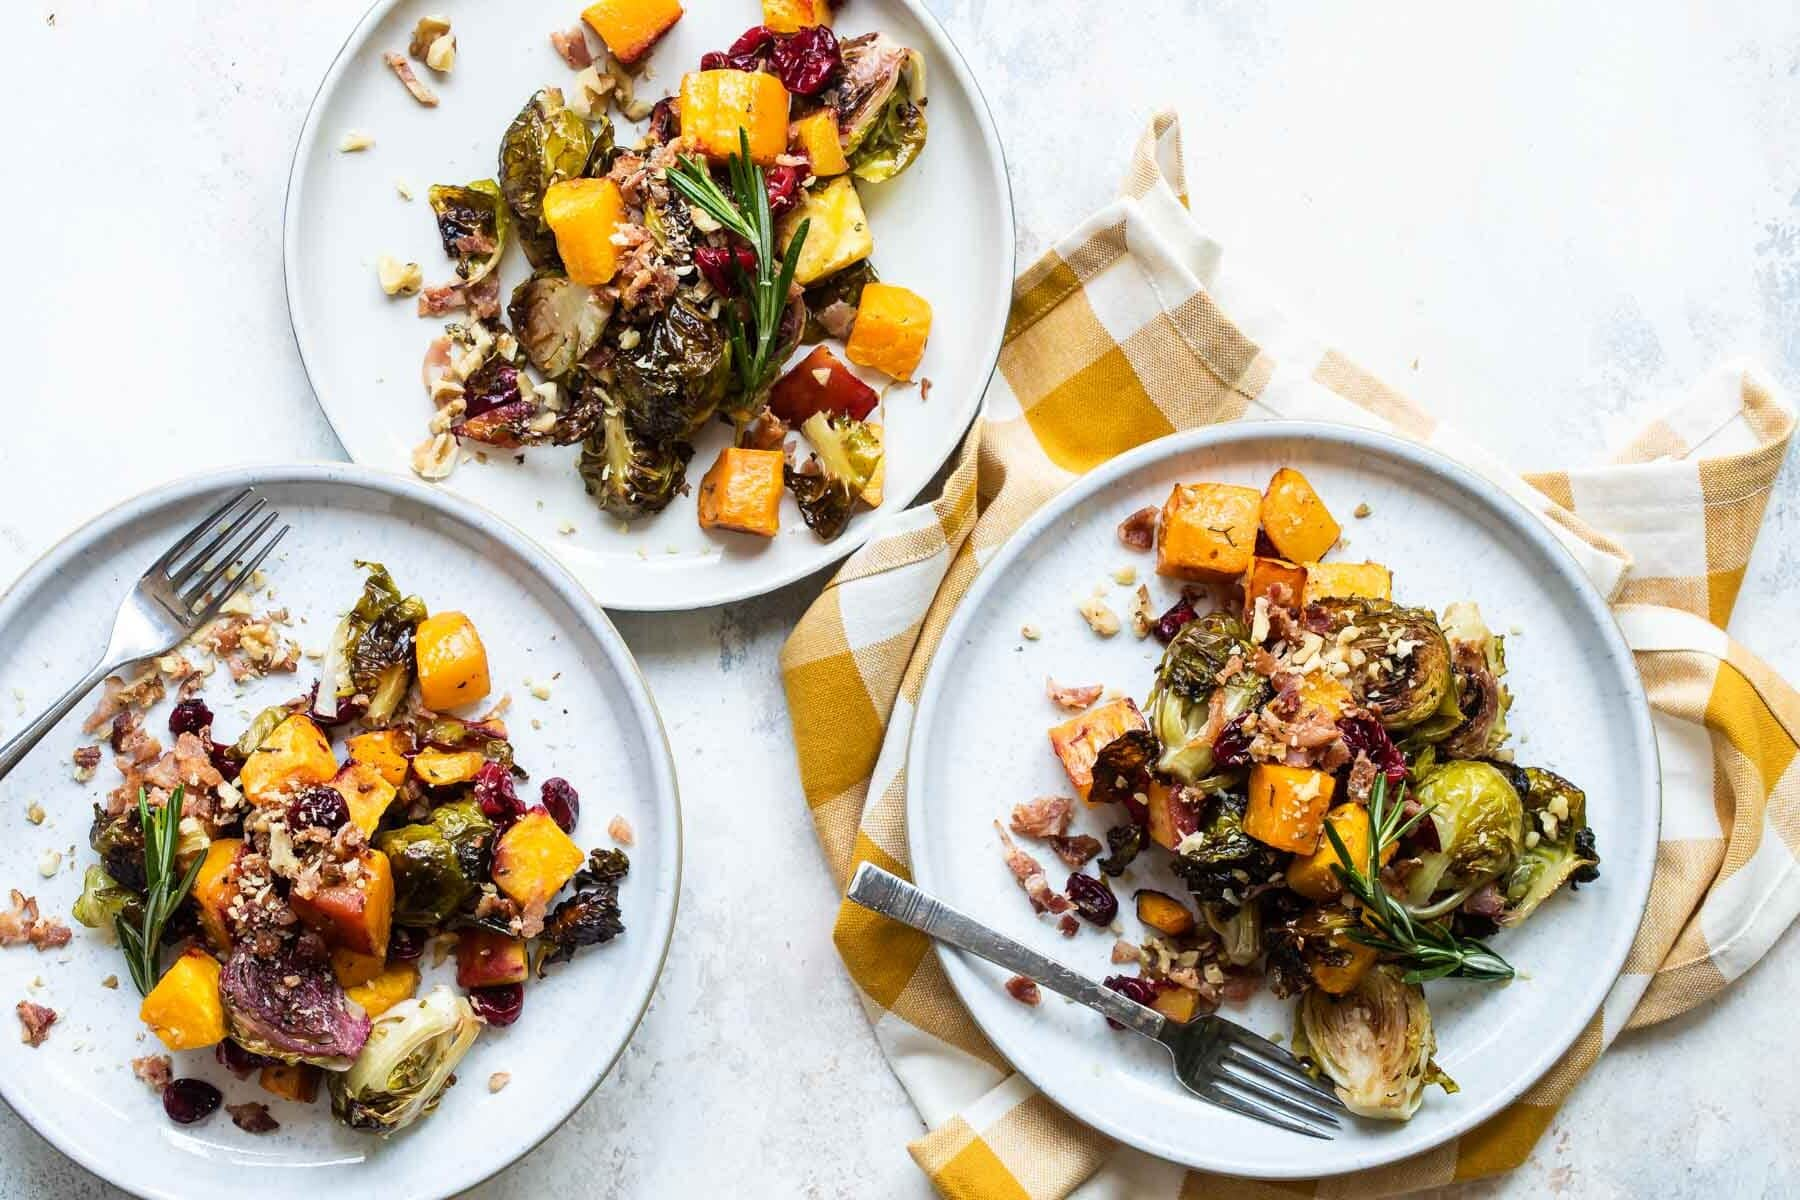 Three servings of harvest roasted vegetables on separate white plates.